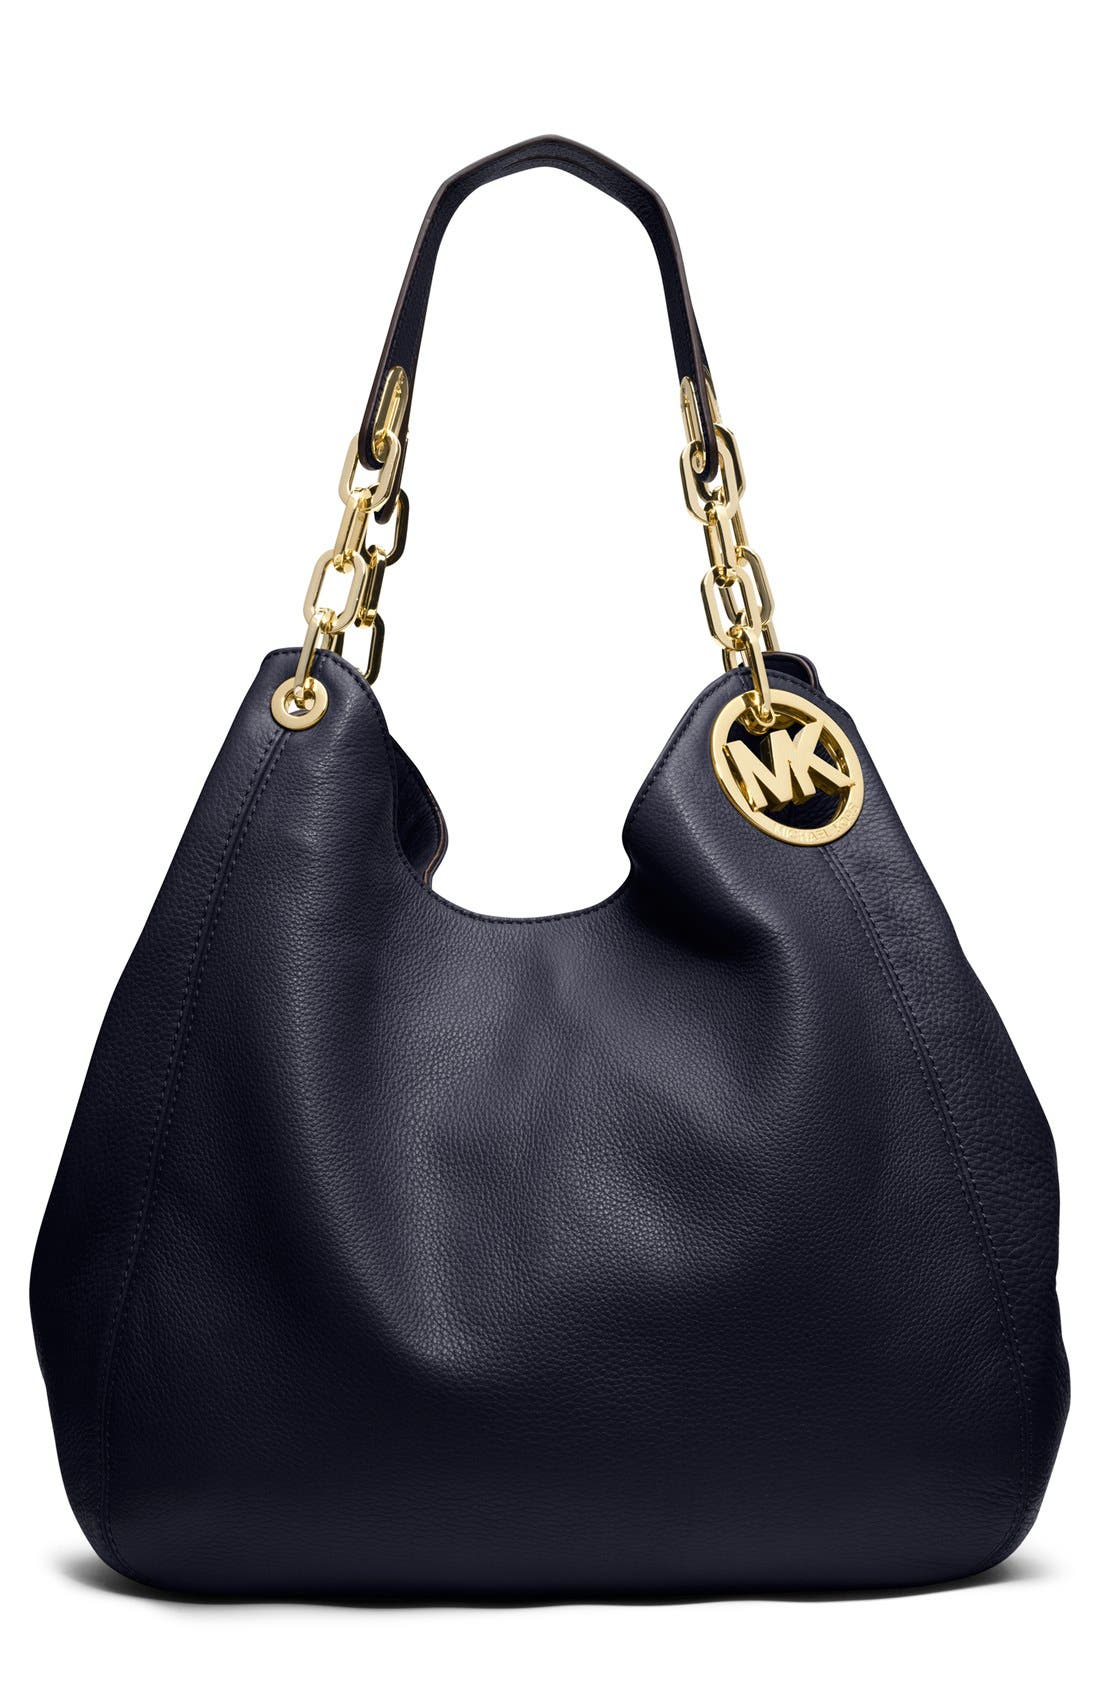 Alternate Image 1 Selected - MICHAEL Michael Kors 'Large Fulton' Leather Tote